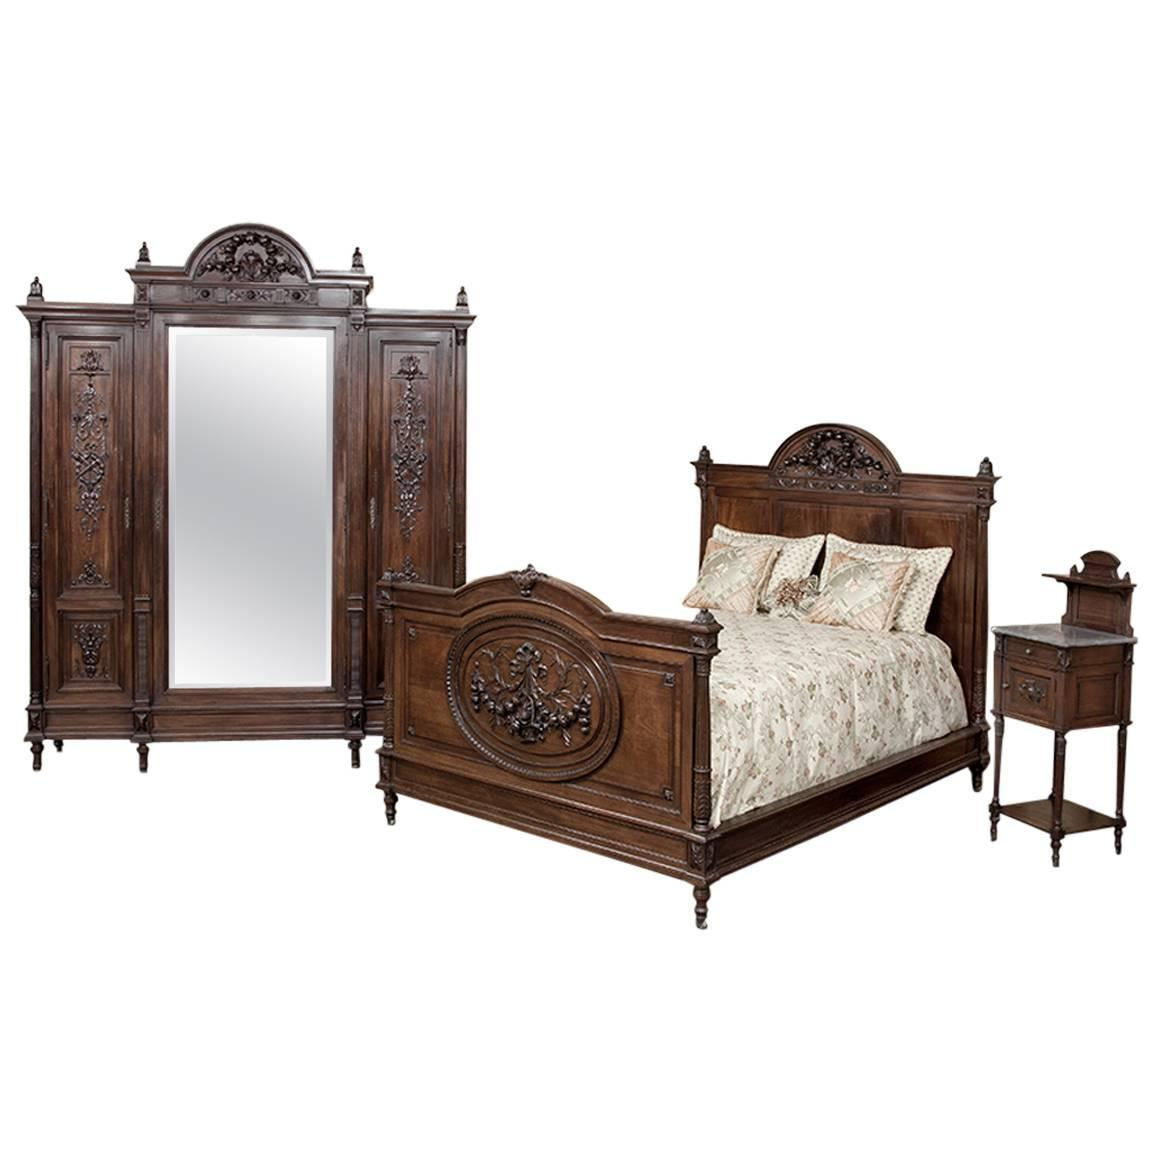 19th century neoclassical mahogany bedroom set at 1stdibs Century bedroom furniture